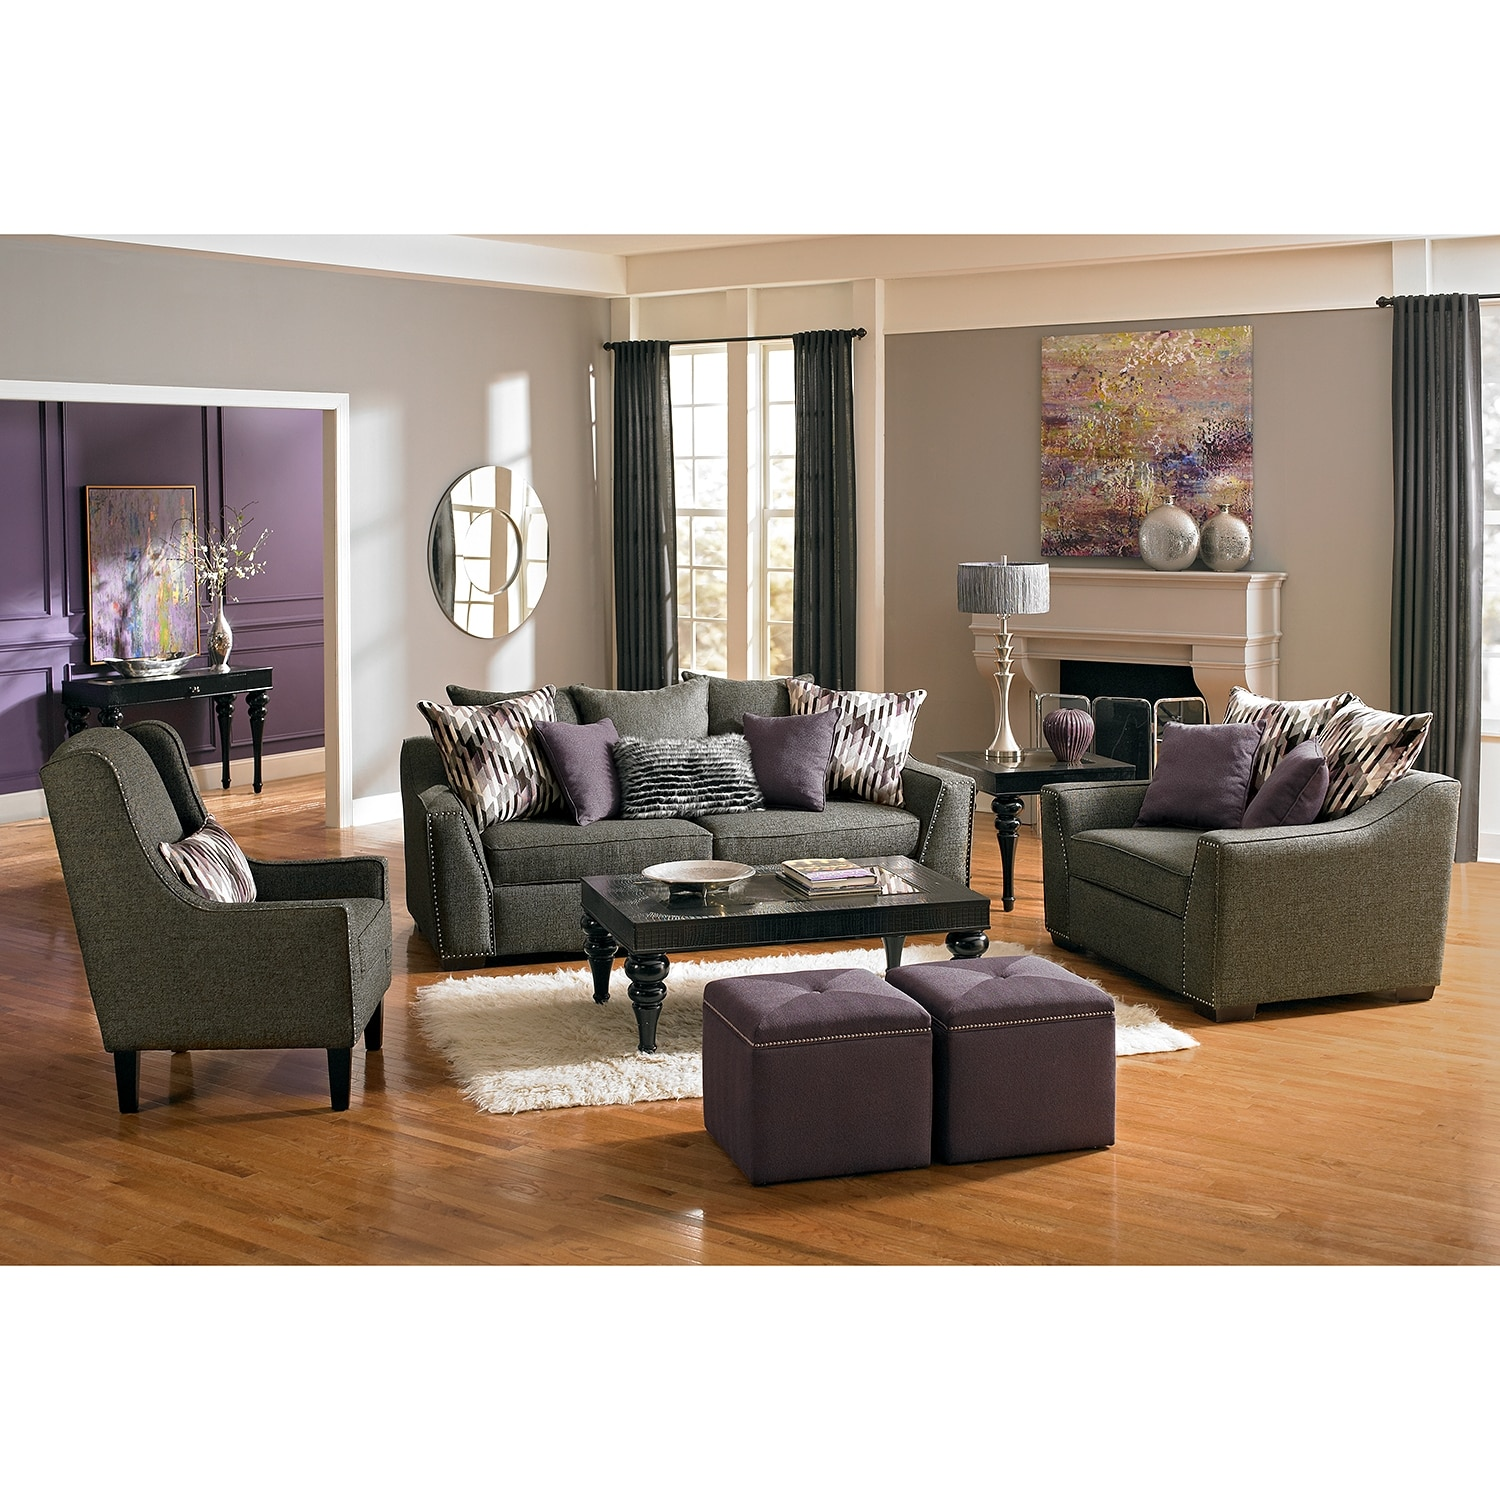 Ritz Sofa Gray Value City Furniture